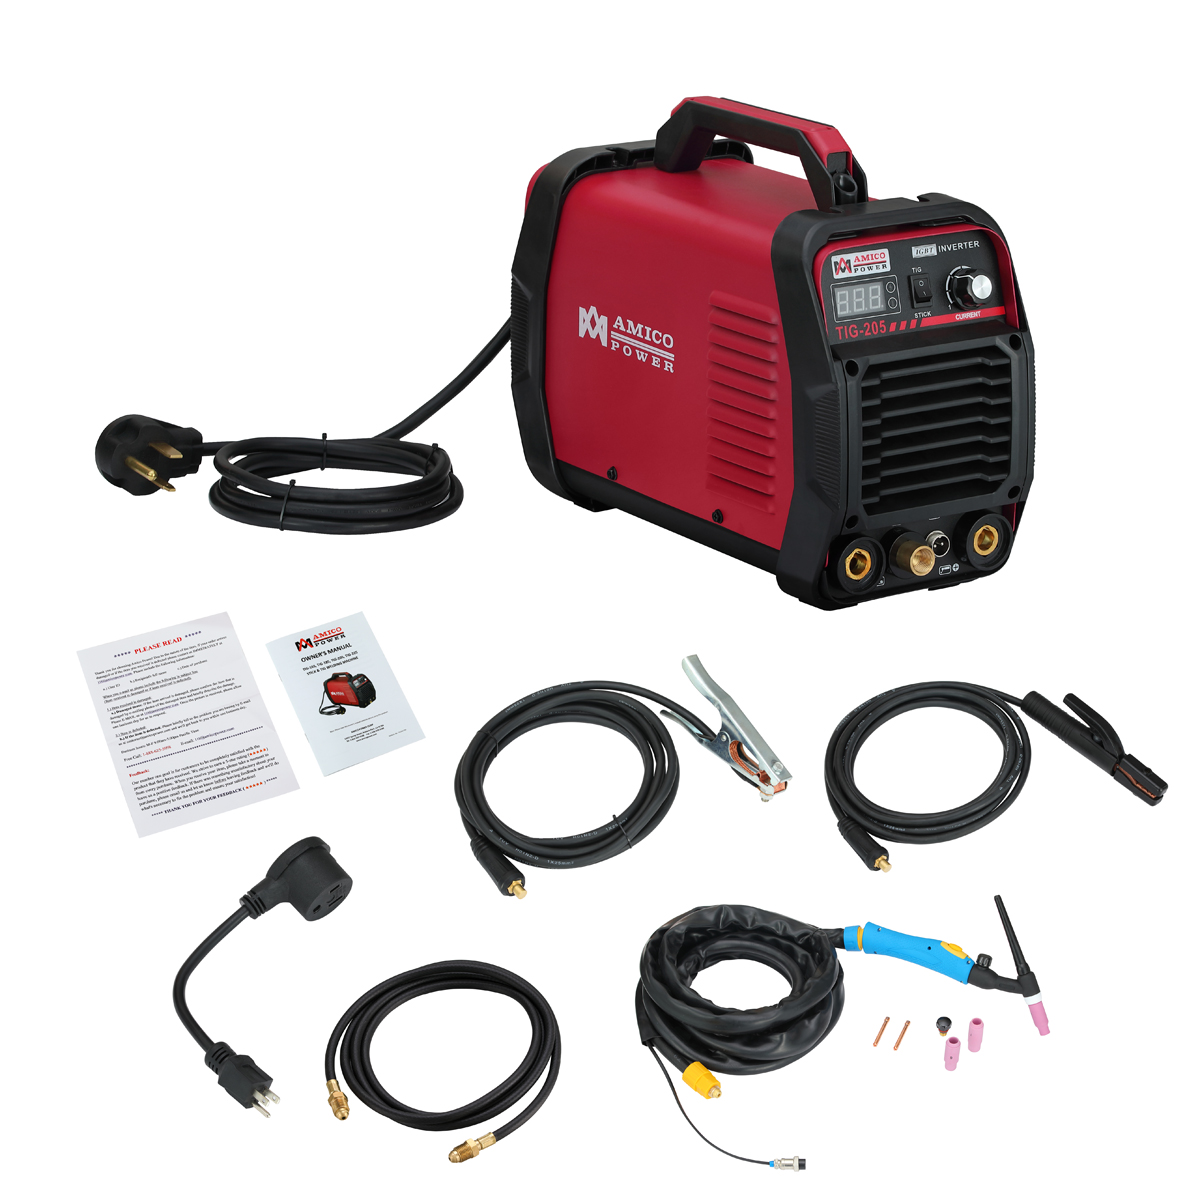 TIG-205 200 Amp HF-TIG Torch/Arc/Stick 2-IN-1 Welder 115/230V Dual Voltage Welding